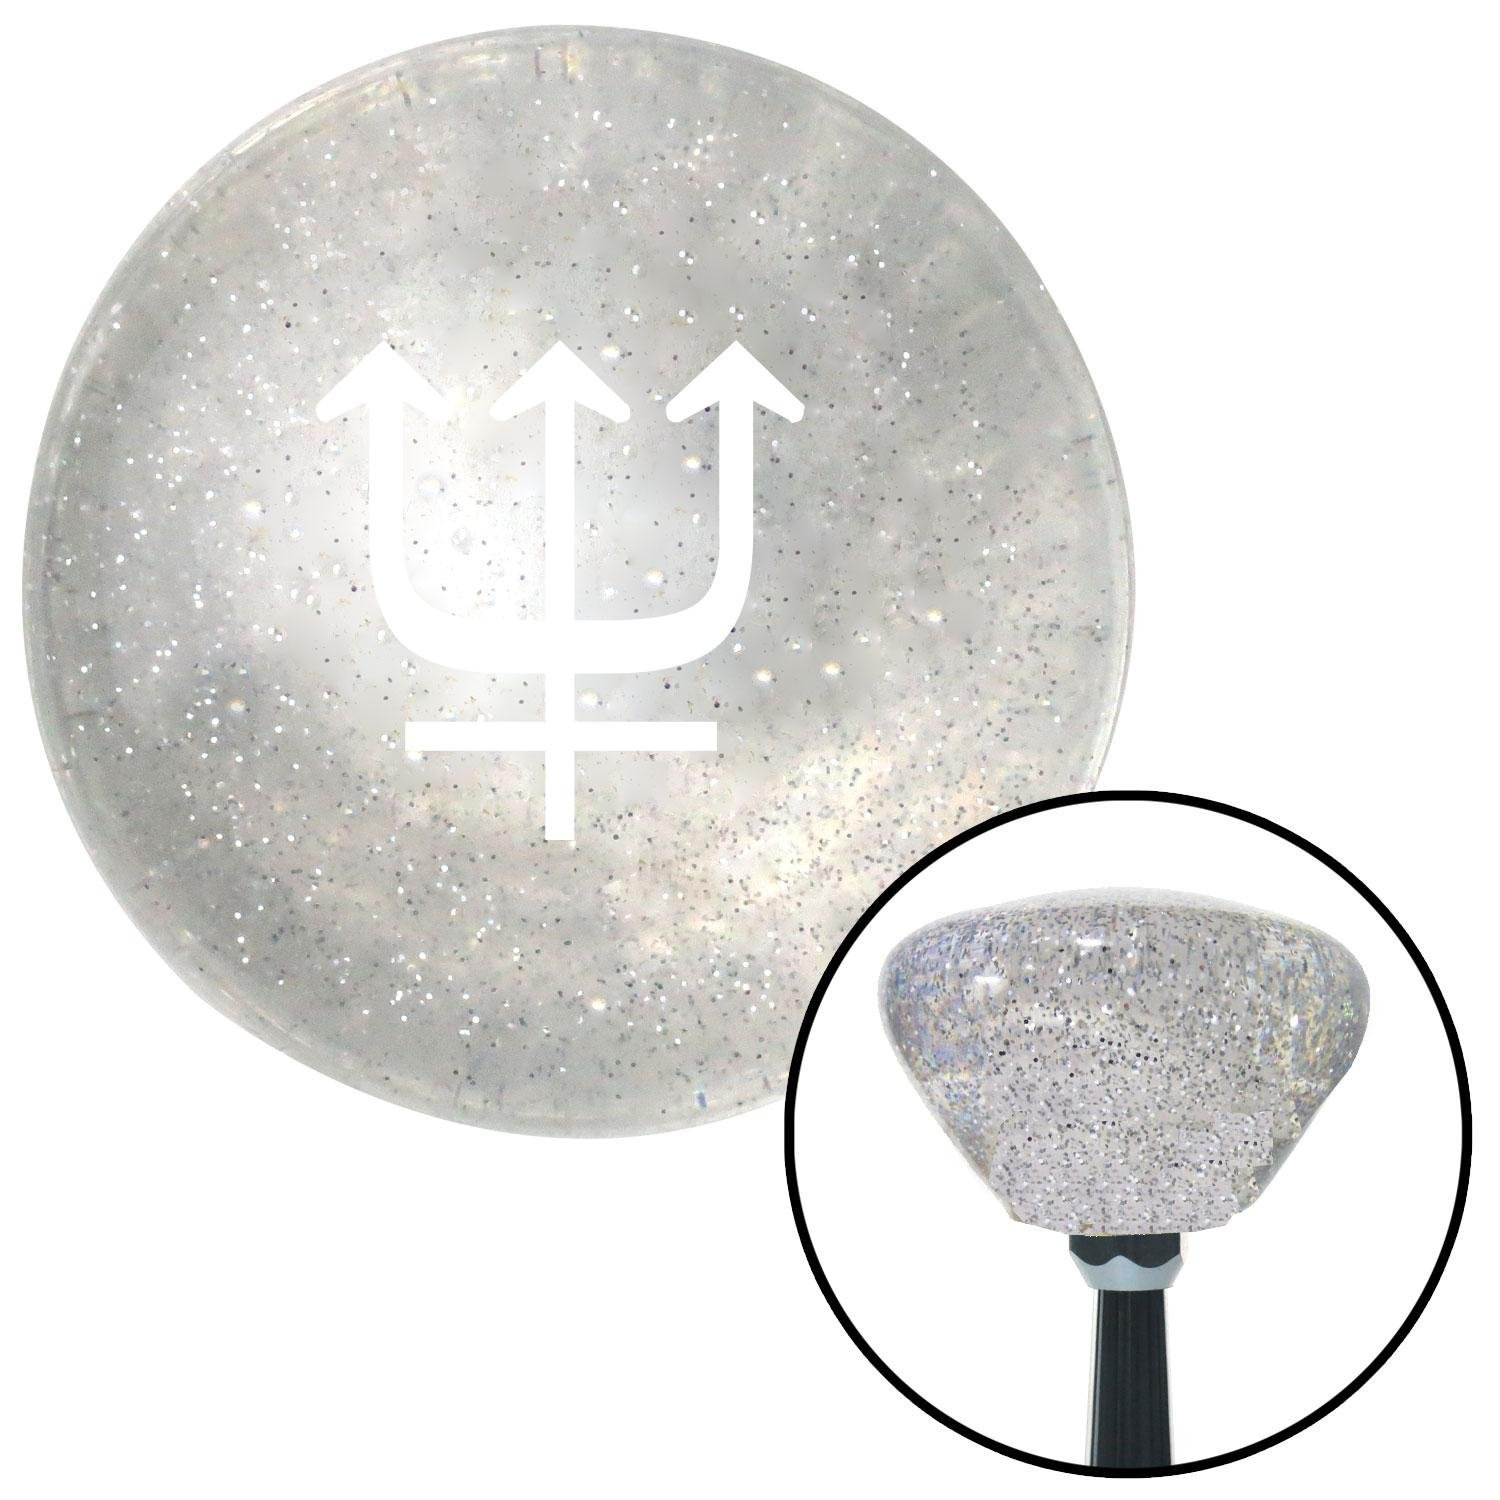 White Neptune American Shifter 163704 Clear Retro Metal Flake Shift Knob with M16 x 1.5 Insert